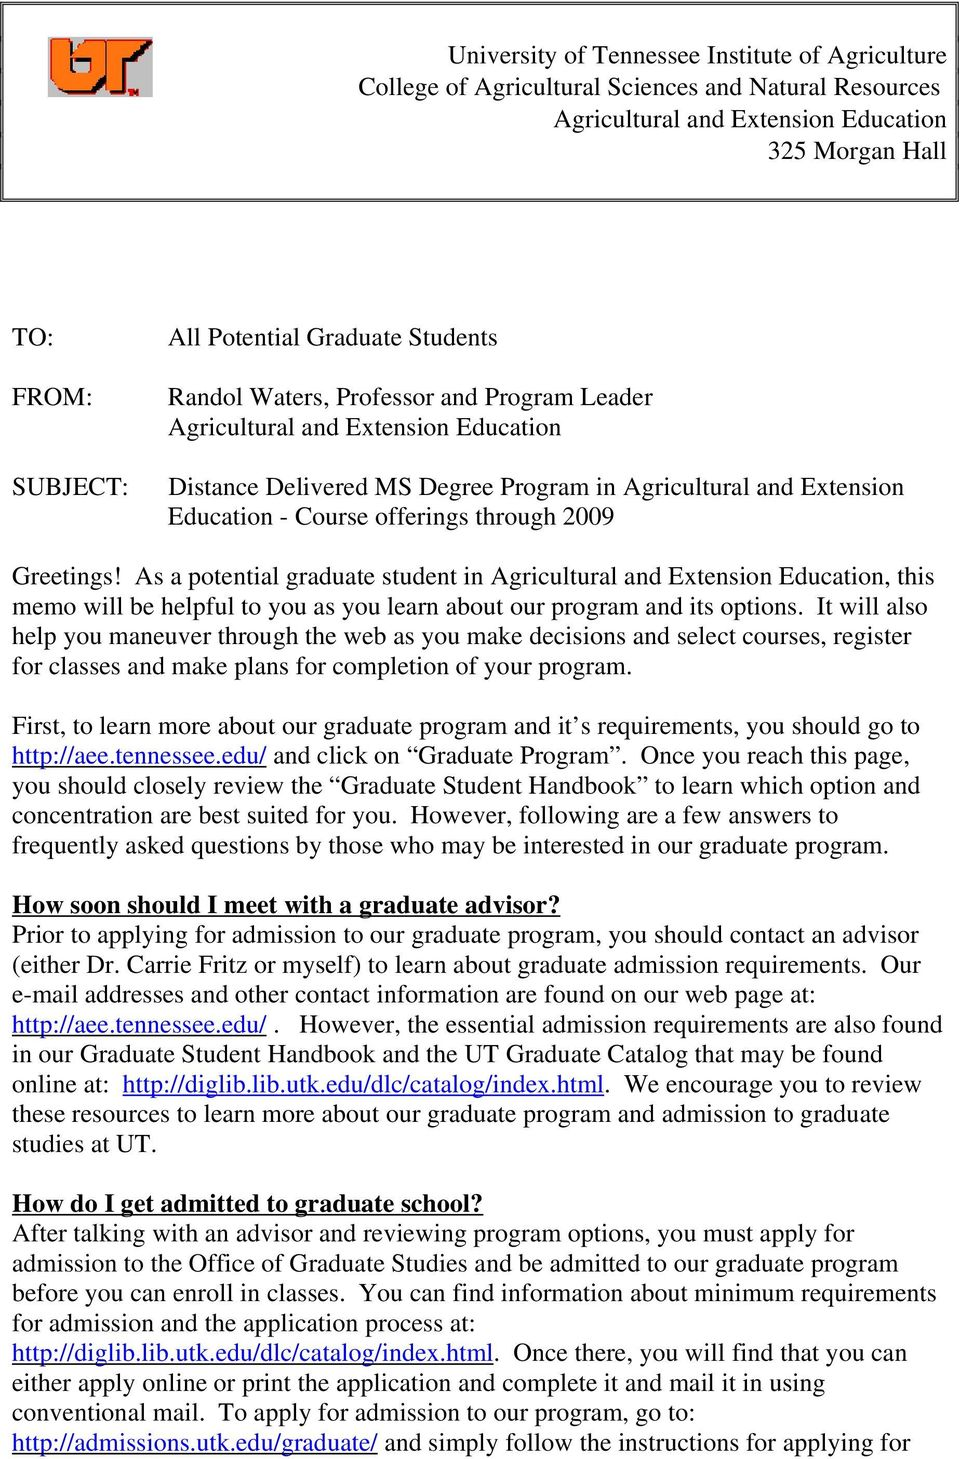 Greetings! As a potential graduate student in Agricultural and Extension Education, this memo will be helpful to you as you learn about our program and its options.